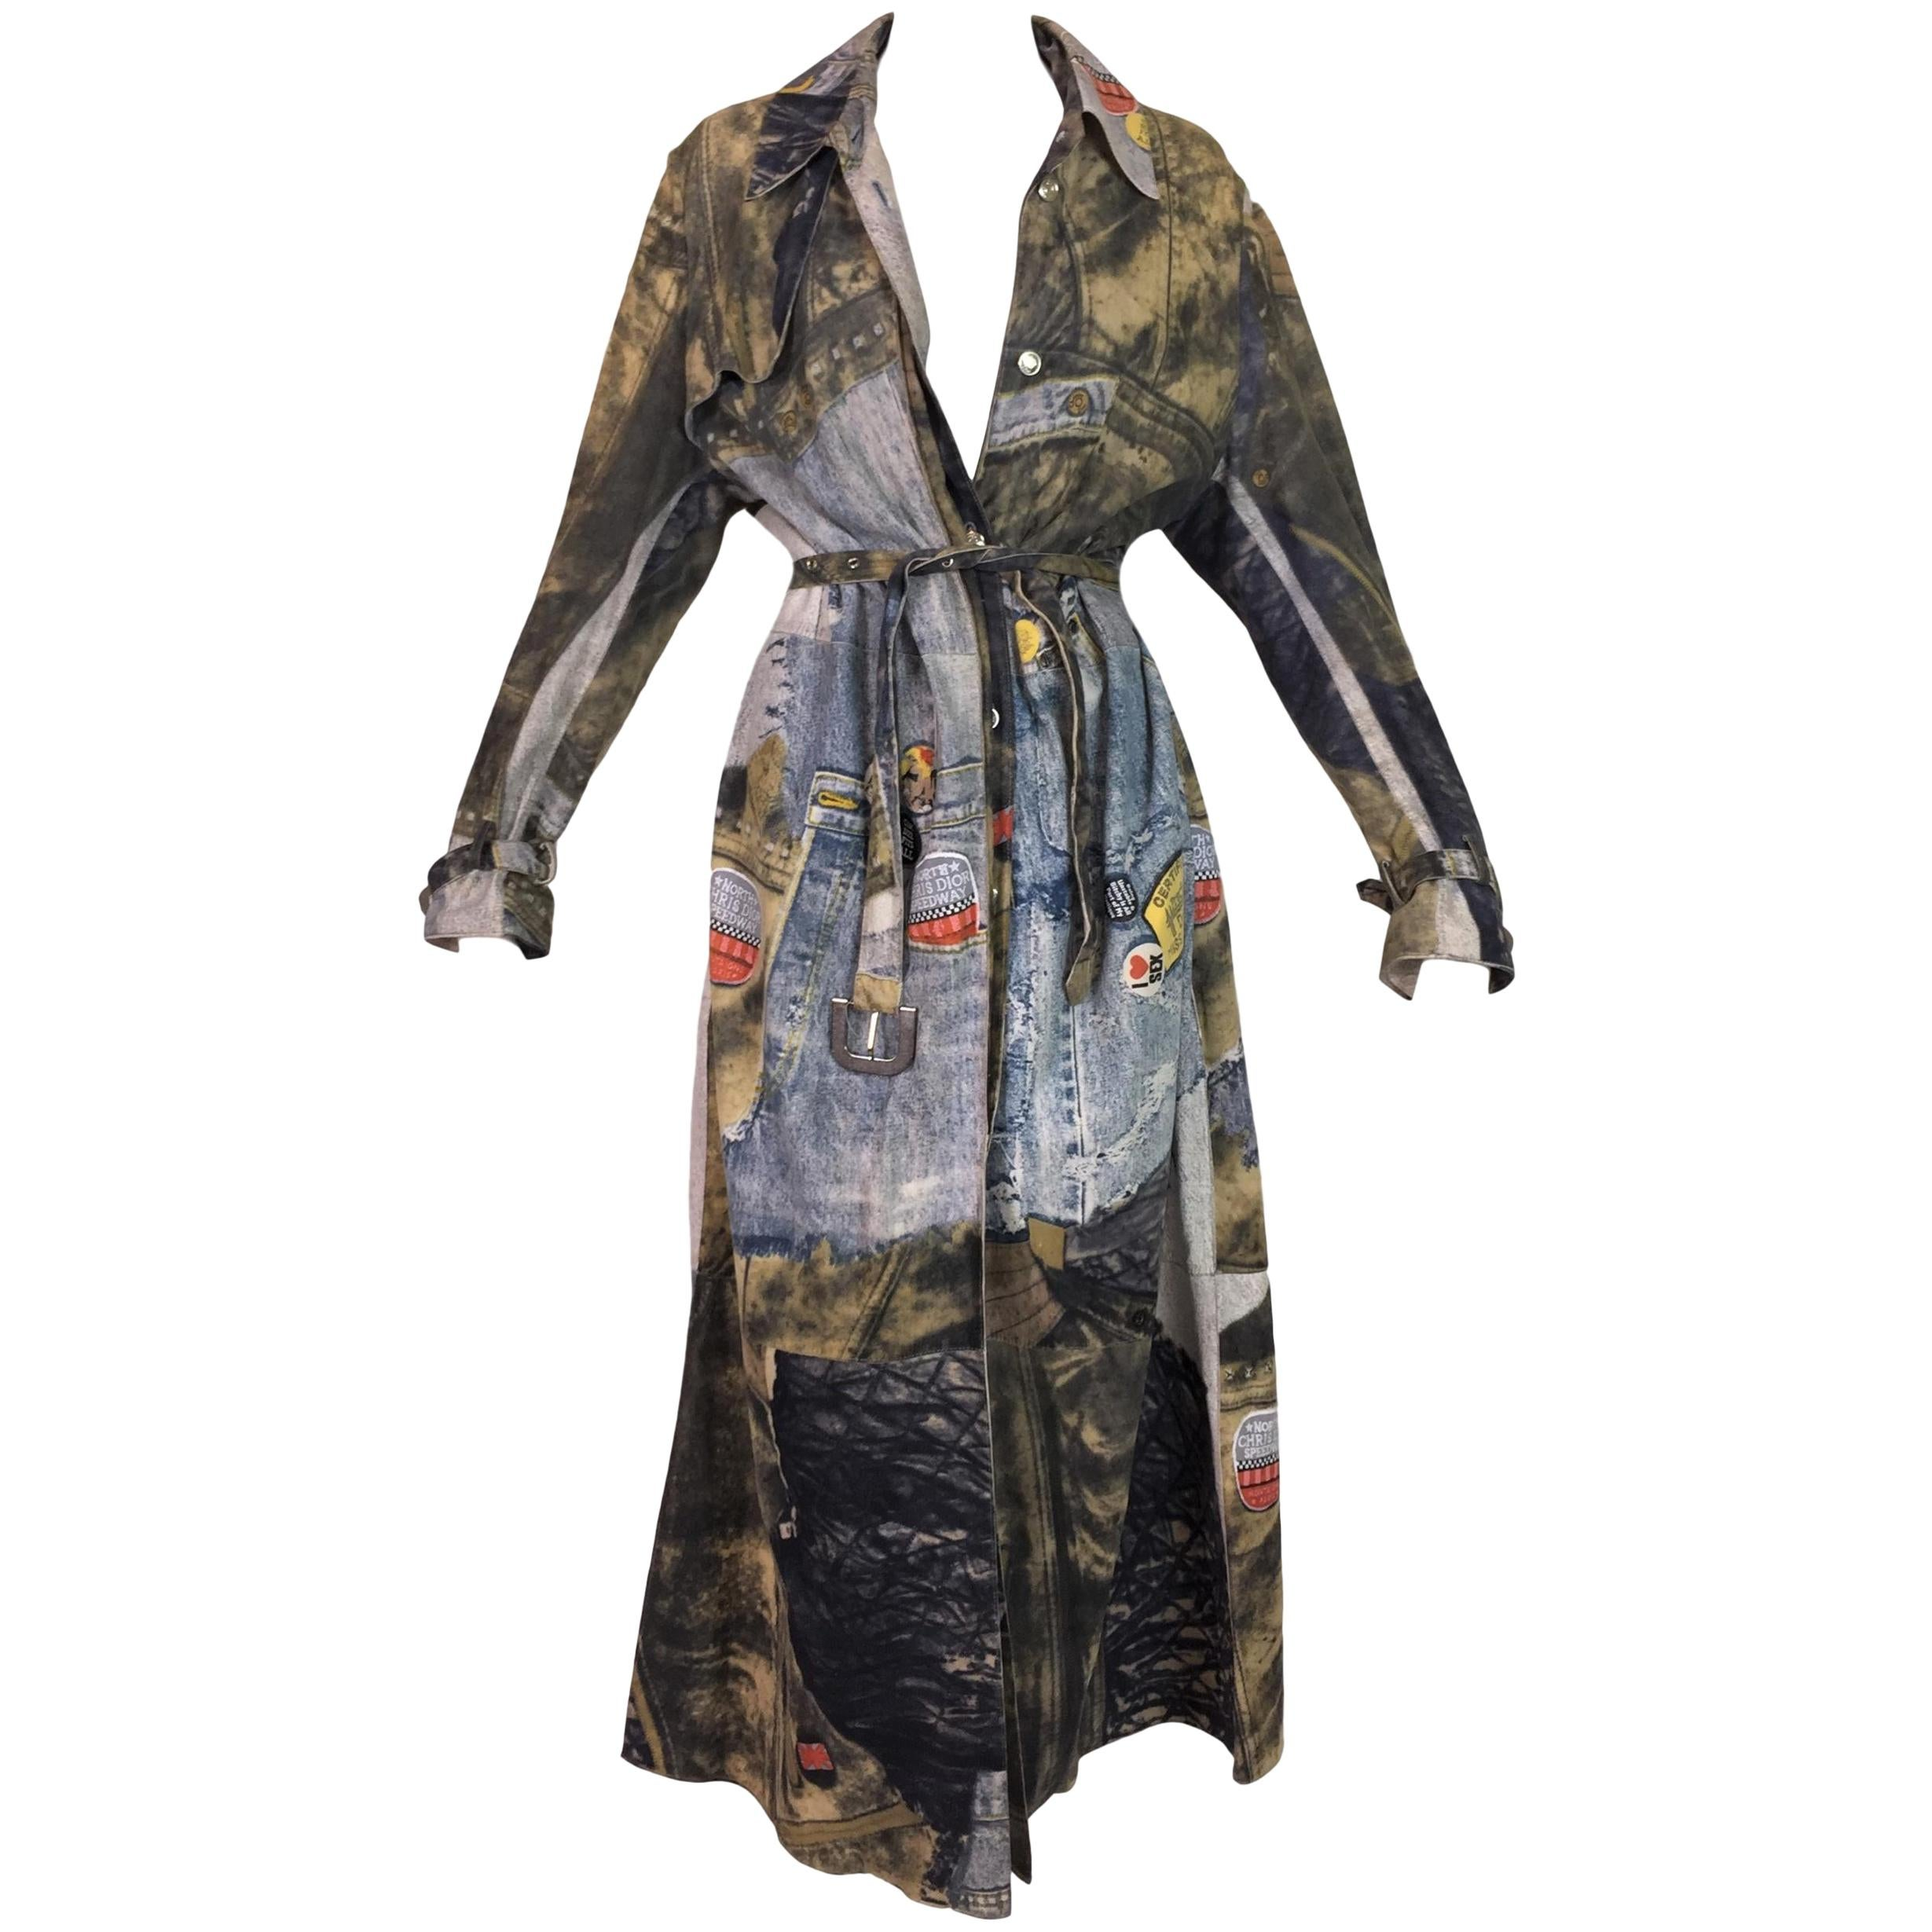 8f3505c2 Vintage Christian Dior Coats and Outerwear - 83 For Sale at 1stdibs